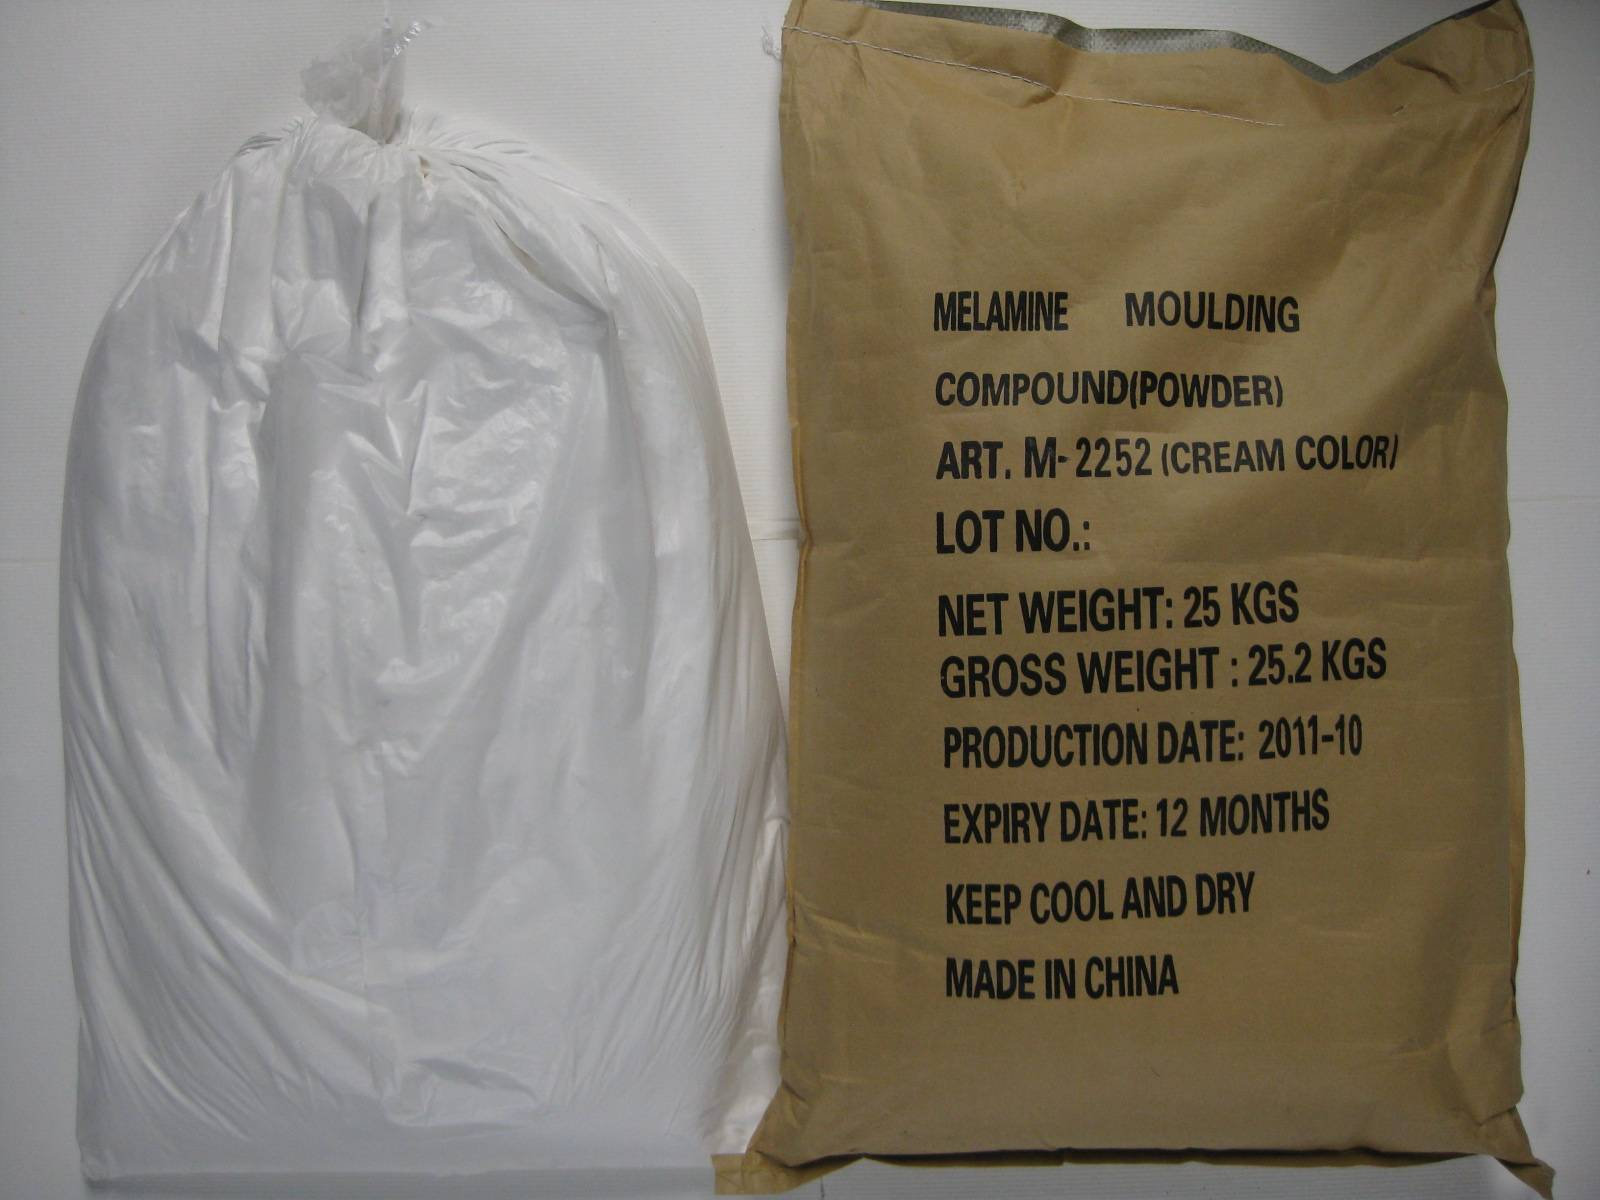 Melamine formaldehyde moulding compound